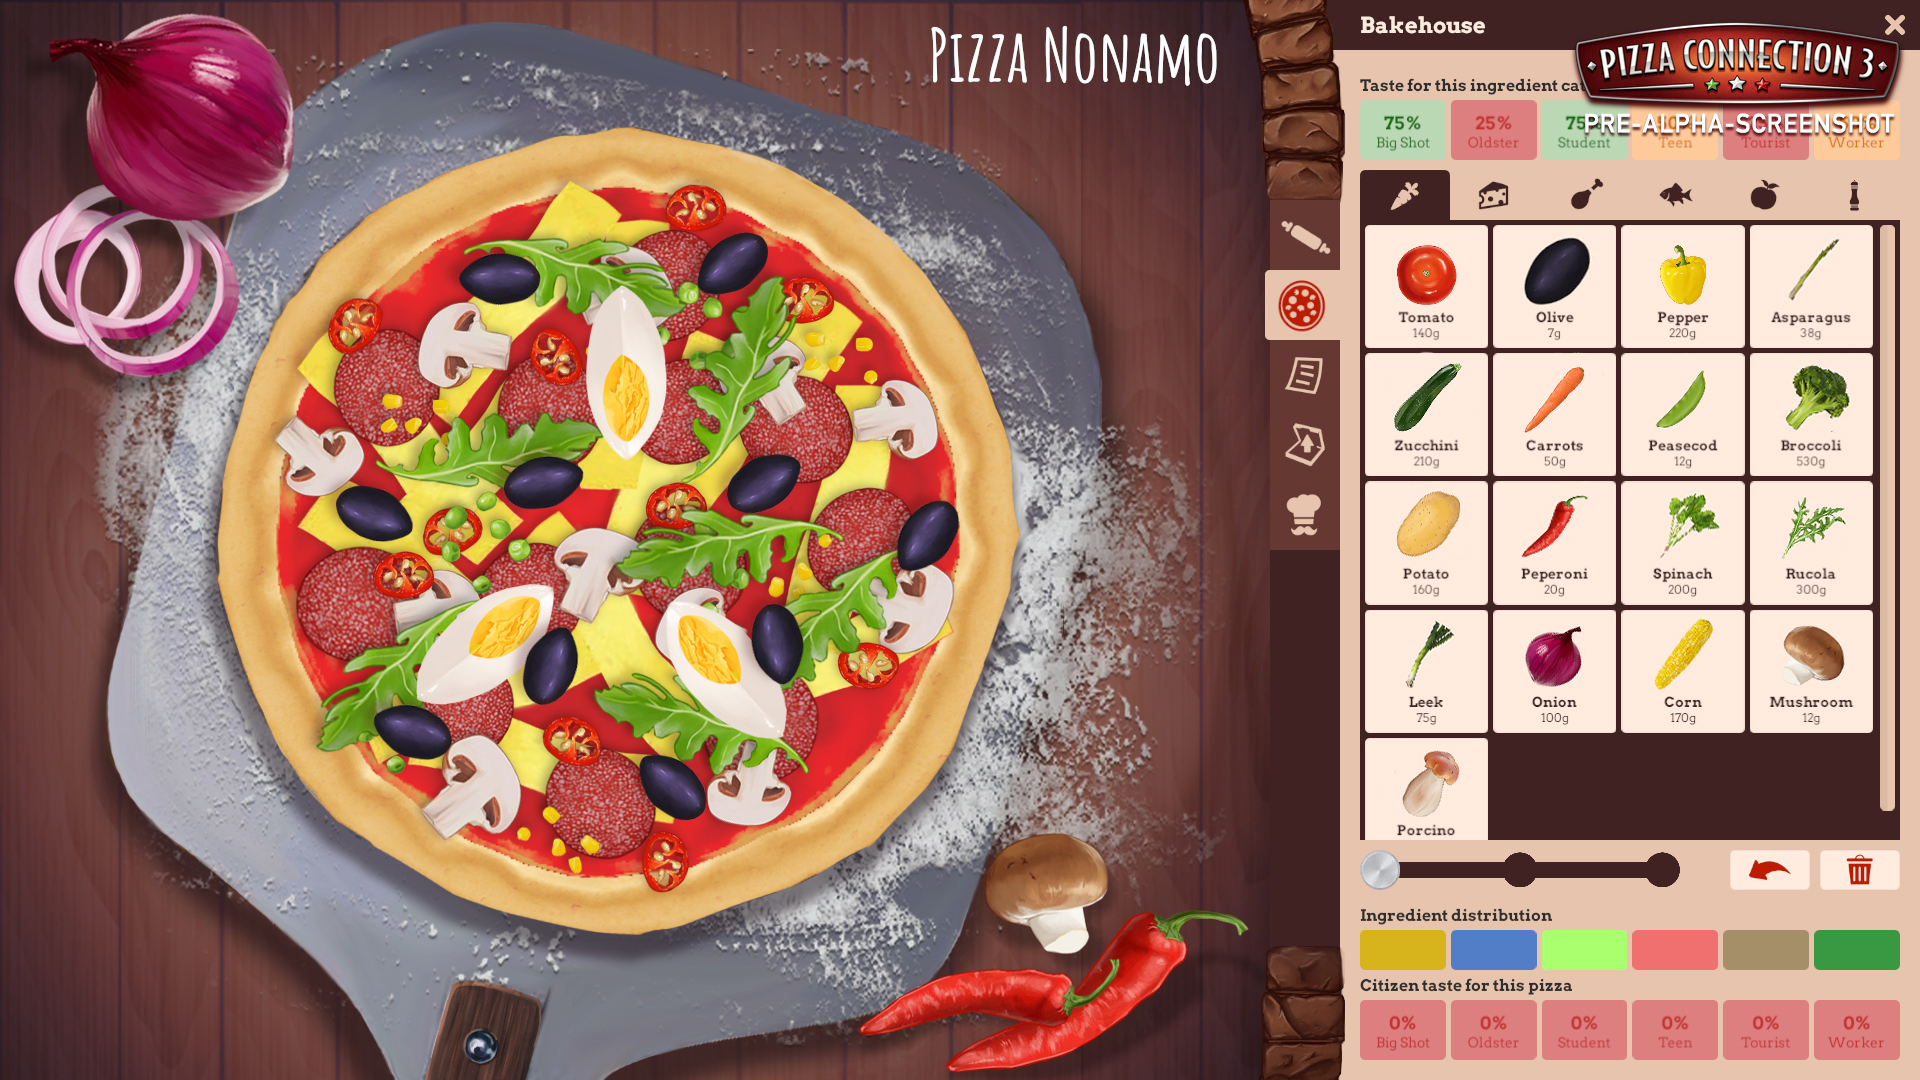 Cuisine Gameplay Pizza Connection 3 Simulation And Management Game To Release With